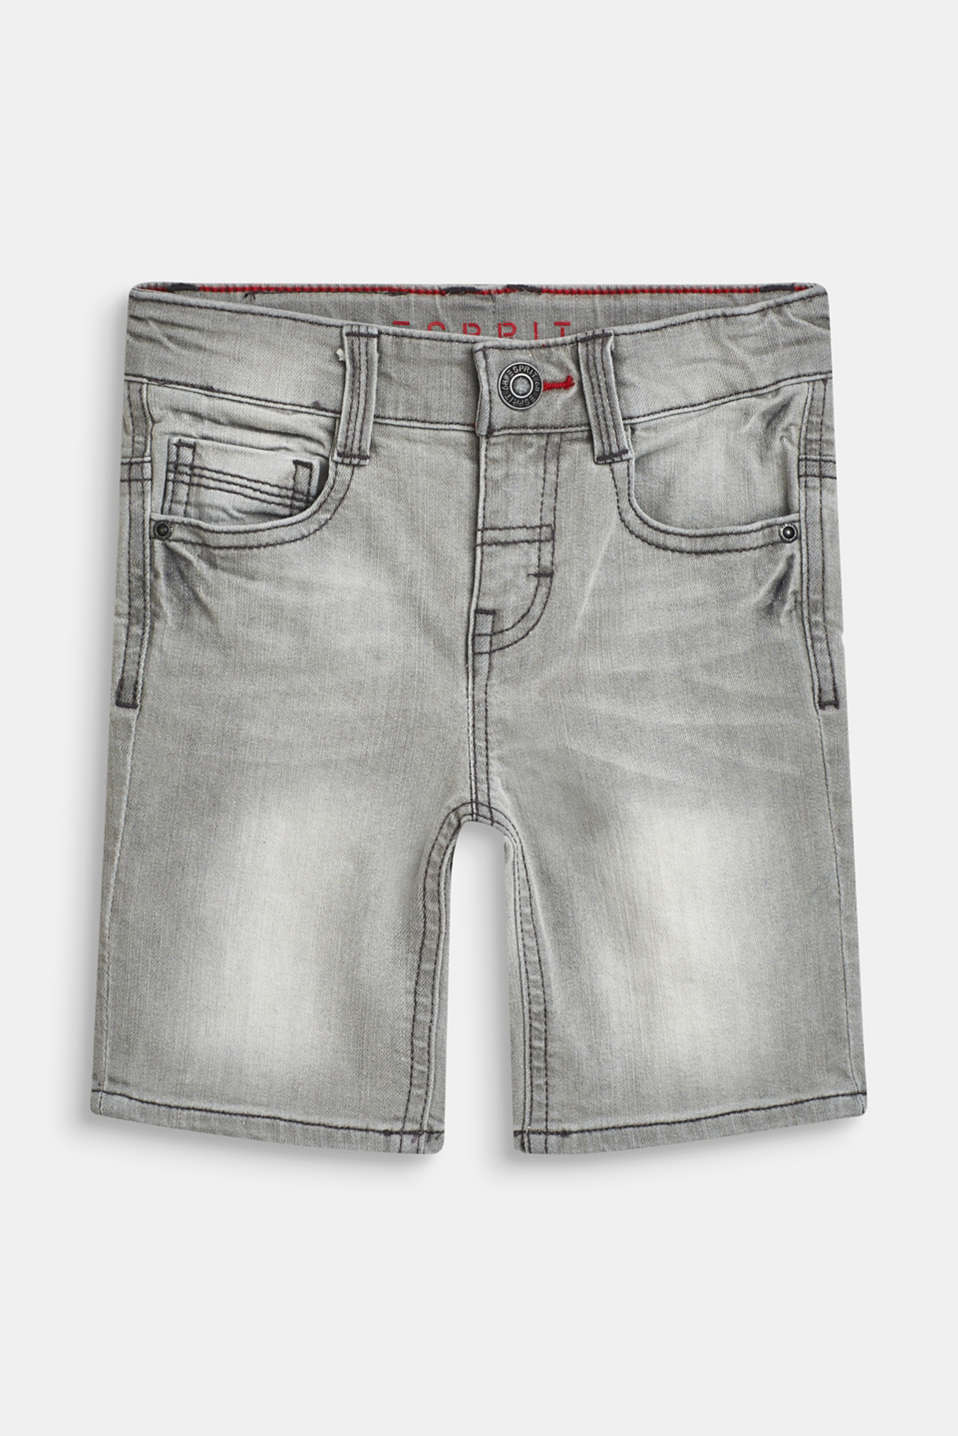 Esprit - Stretch denim Bermudas with an adjustable waistband